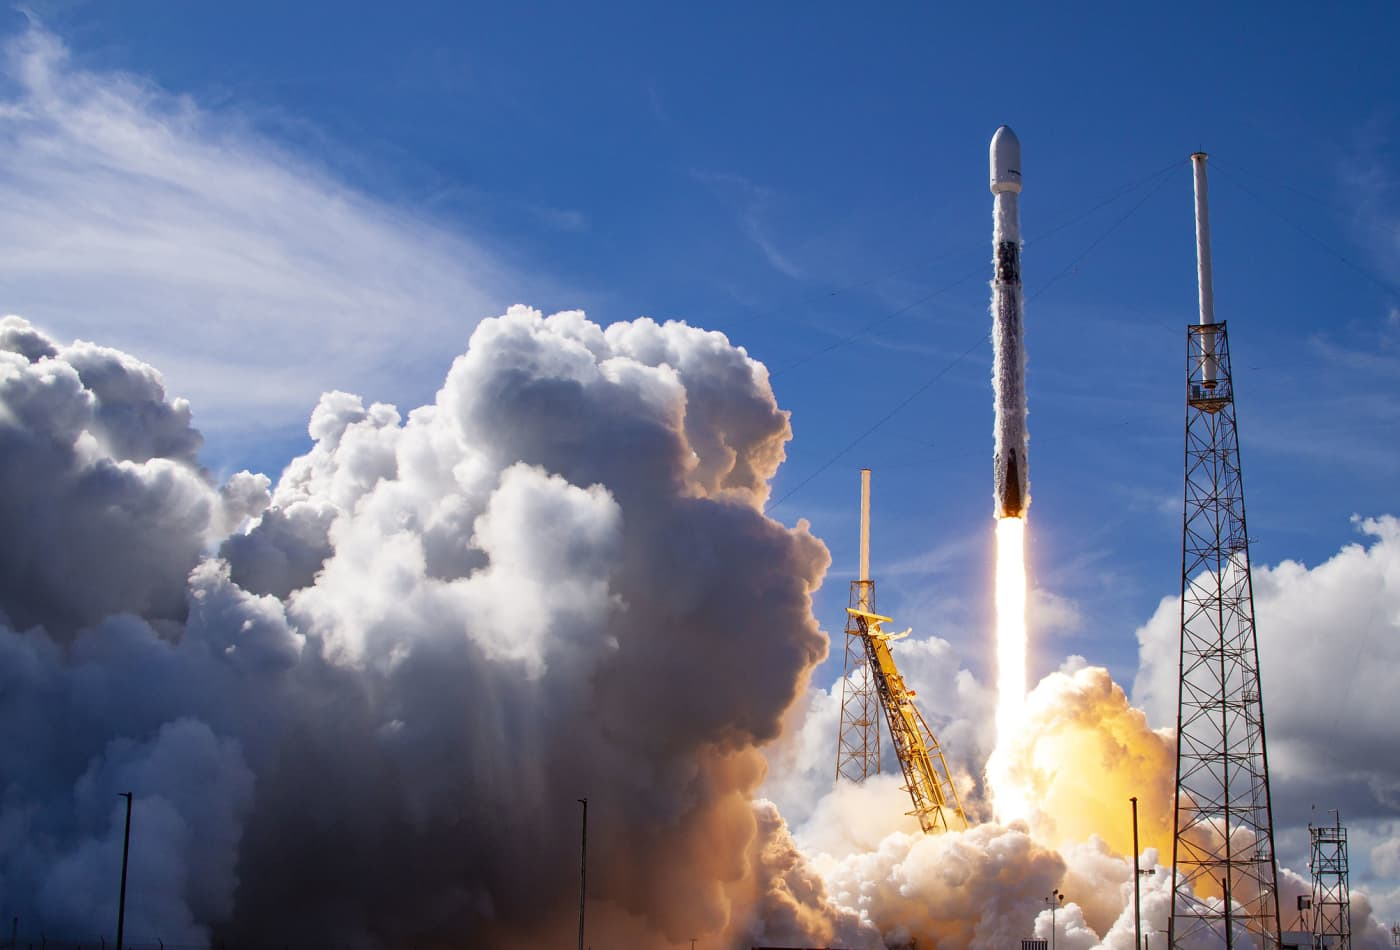 Sirius XM's latest satellite, built by Maxar and launched by SpaceX, suffers failure in orbit